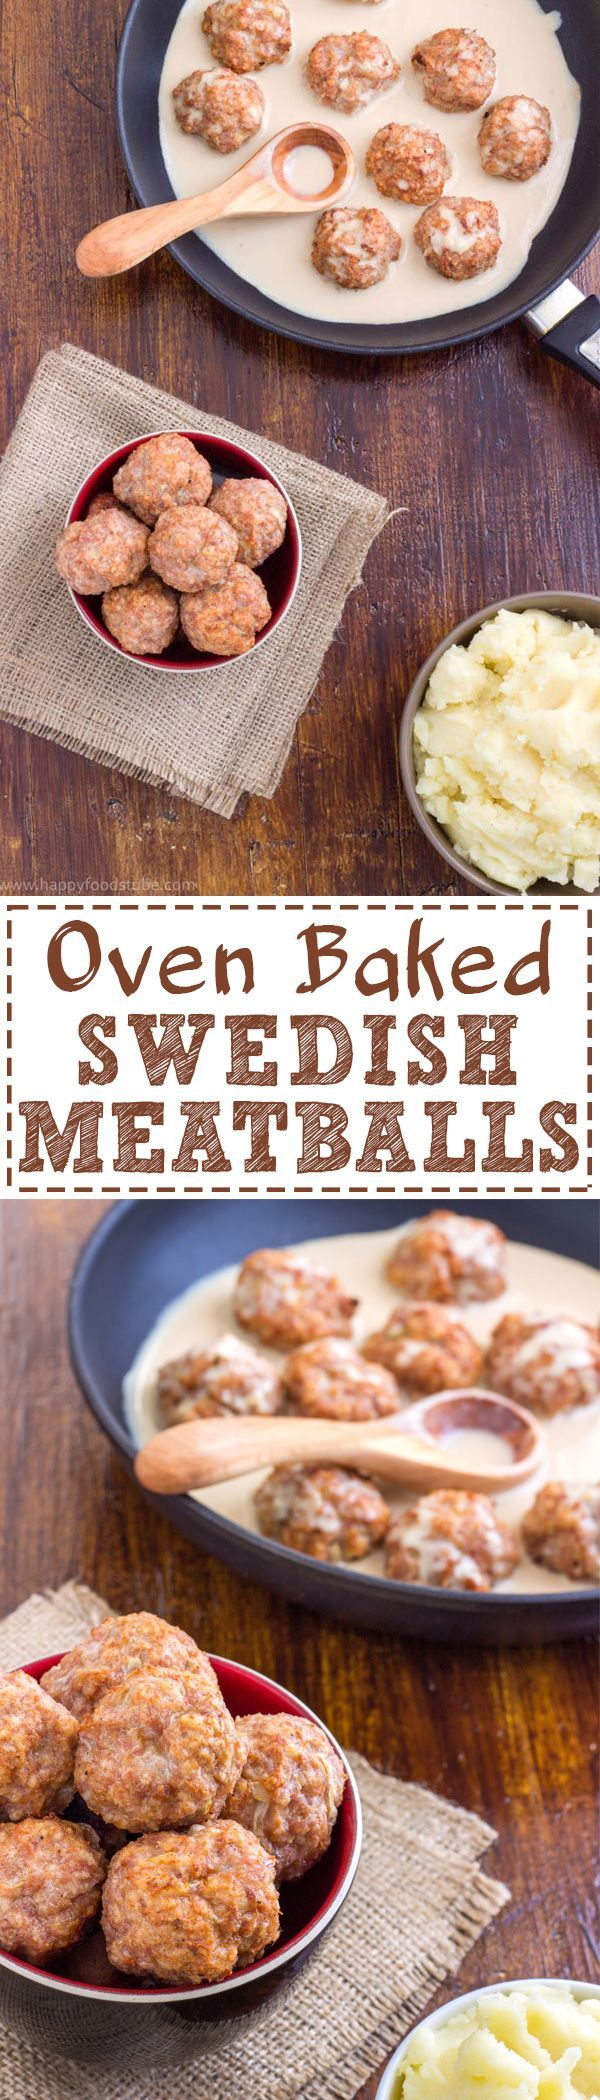 Homemade Oven Baked Swedish Meatballs Recipe! This hearty dish, served with creamy sauce and mashed potatoes is a classic comfort food. | http://happyfoodstube.com